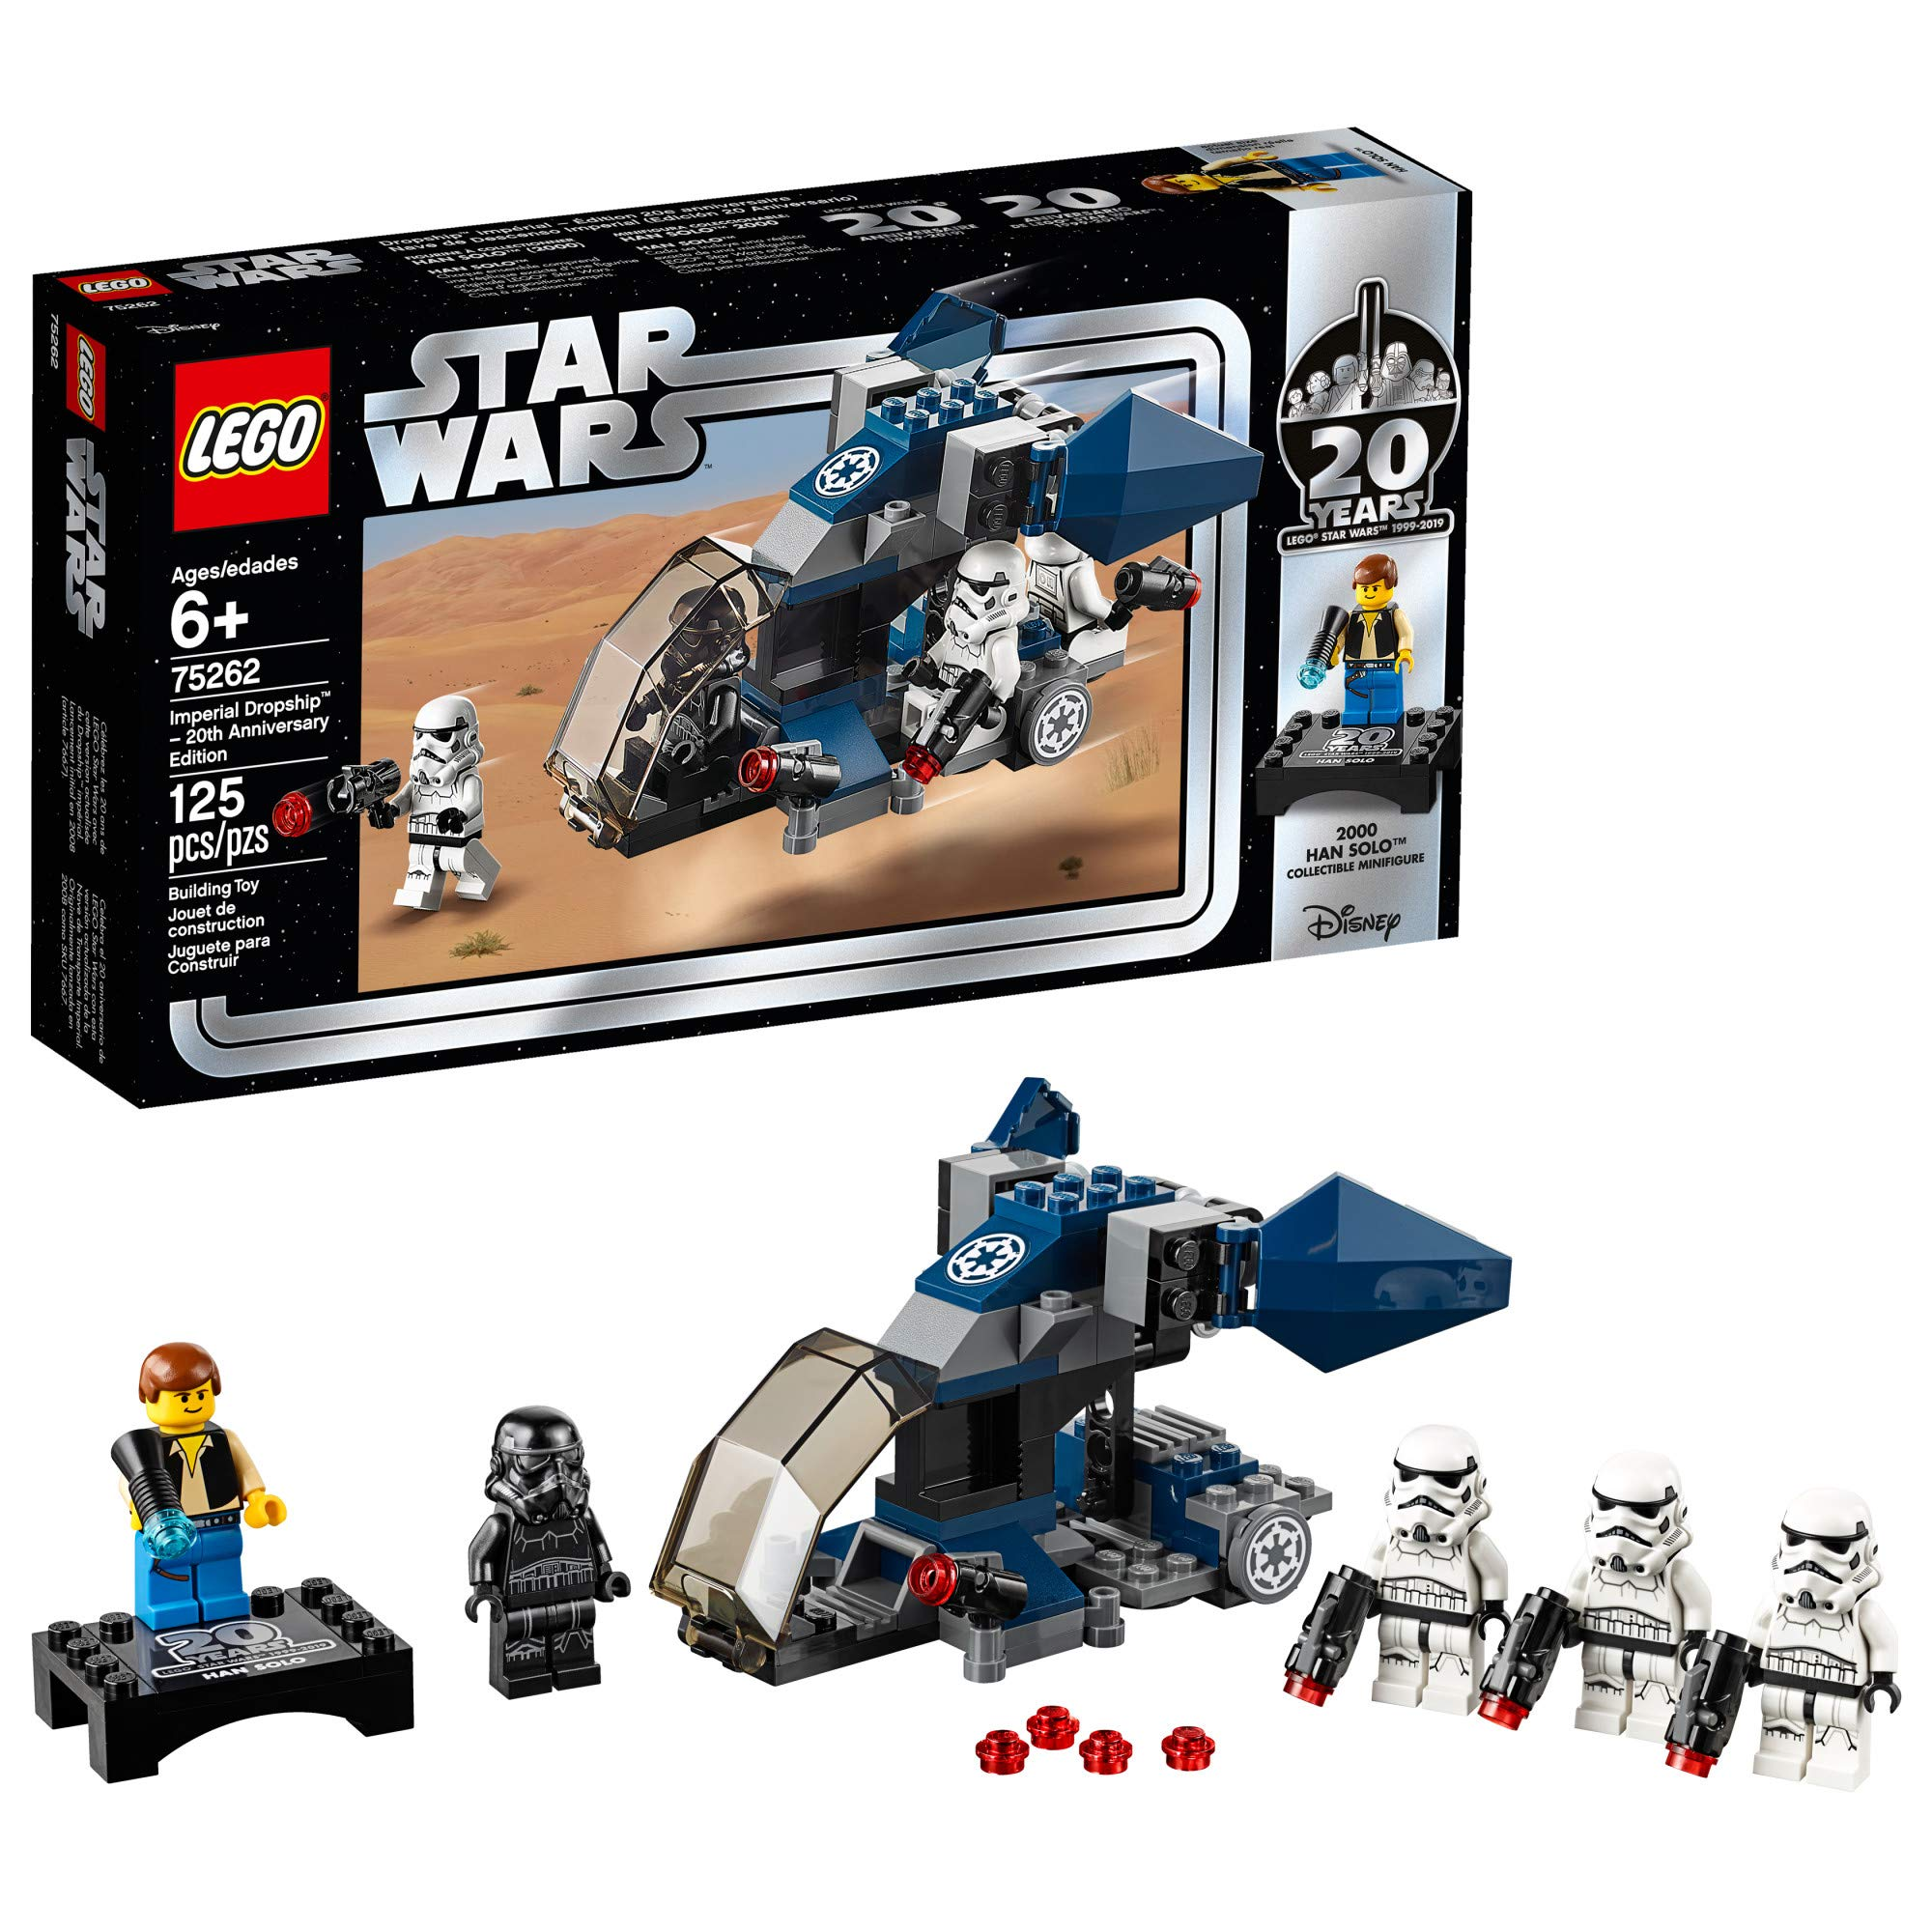 LEGO Star Wars Imperial Dropship - 20th Anniversary Edition 75262 Building Kit, New 2019 (125 Pieces) by LEGO